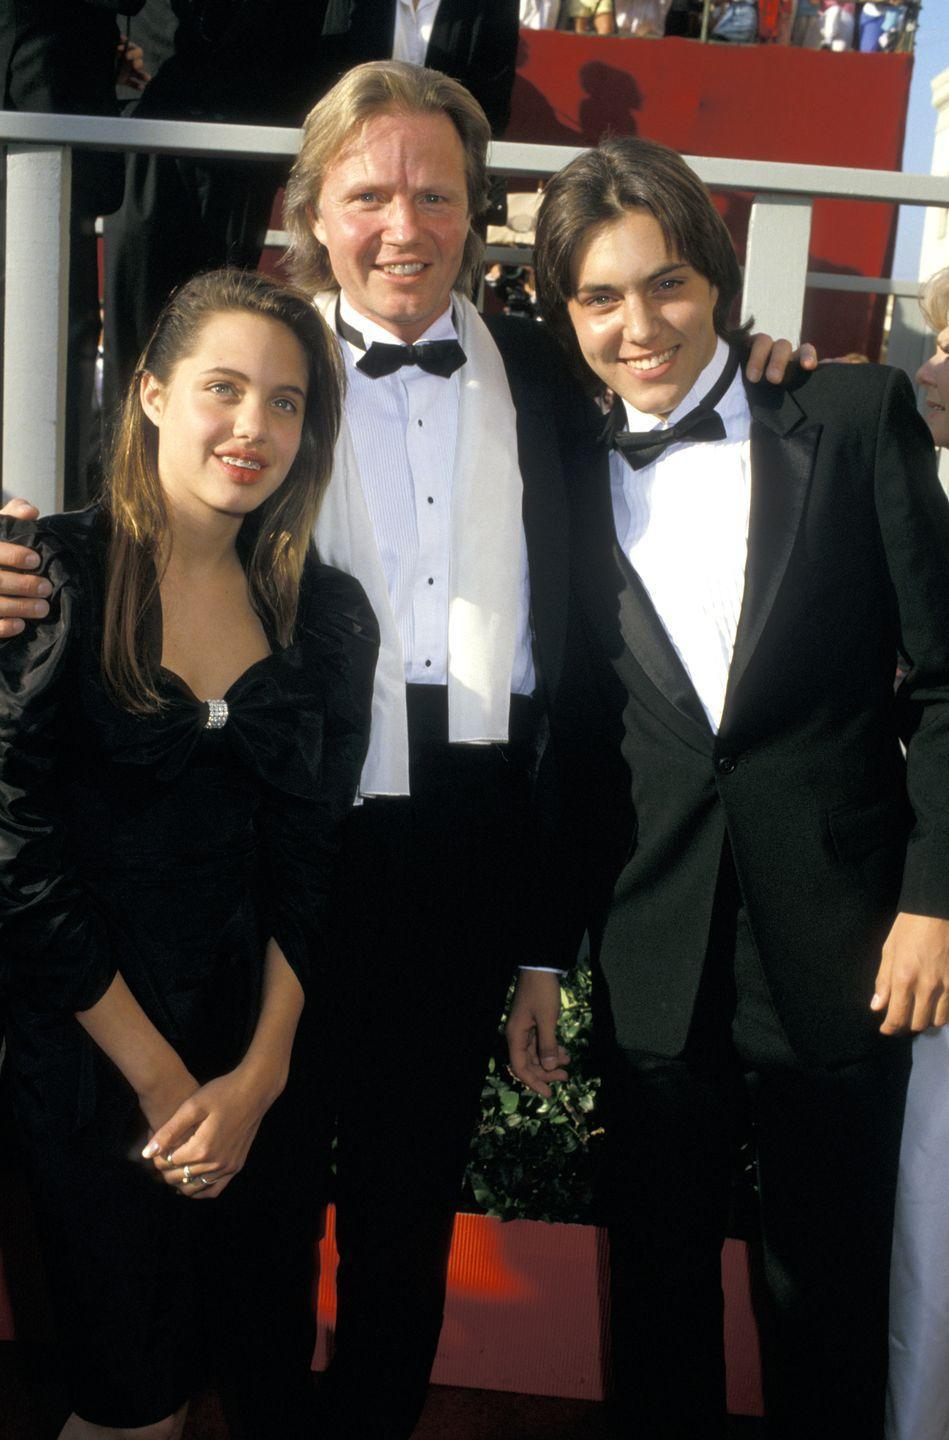 <p>Angelina Jolie is another celeb who grew up in the limelight. Having attended some red carpet events as a teen, Angelina was spotted with her father Jon Voight and a mouthful of braces.</p>